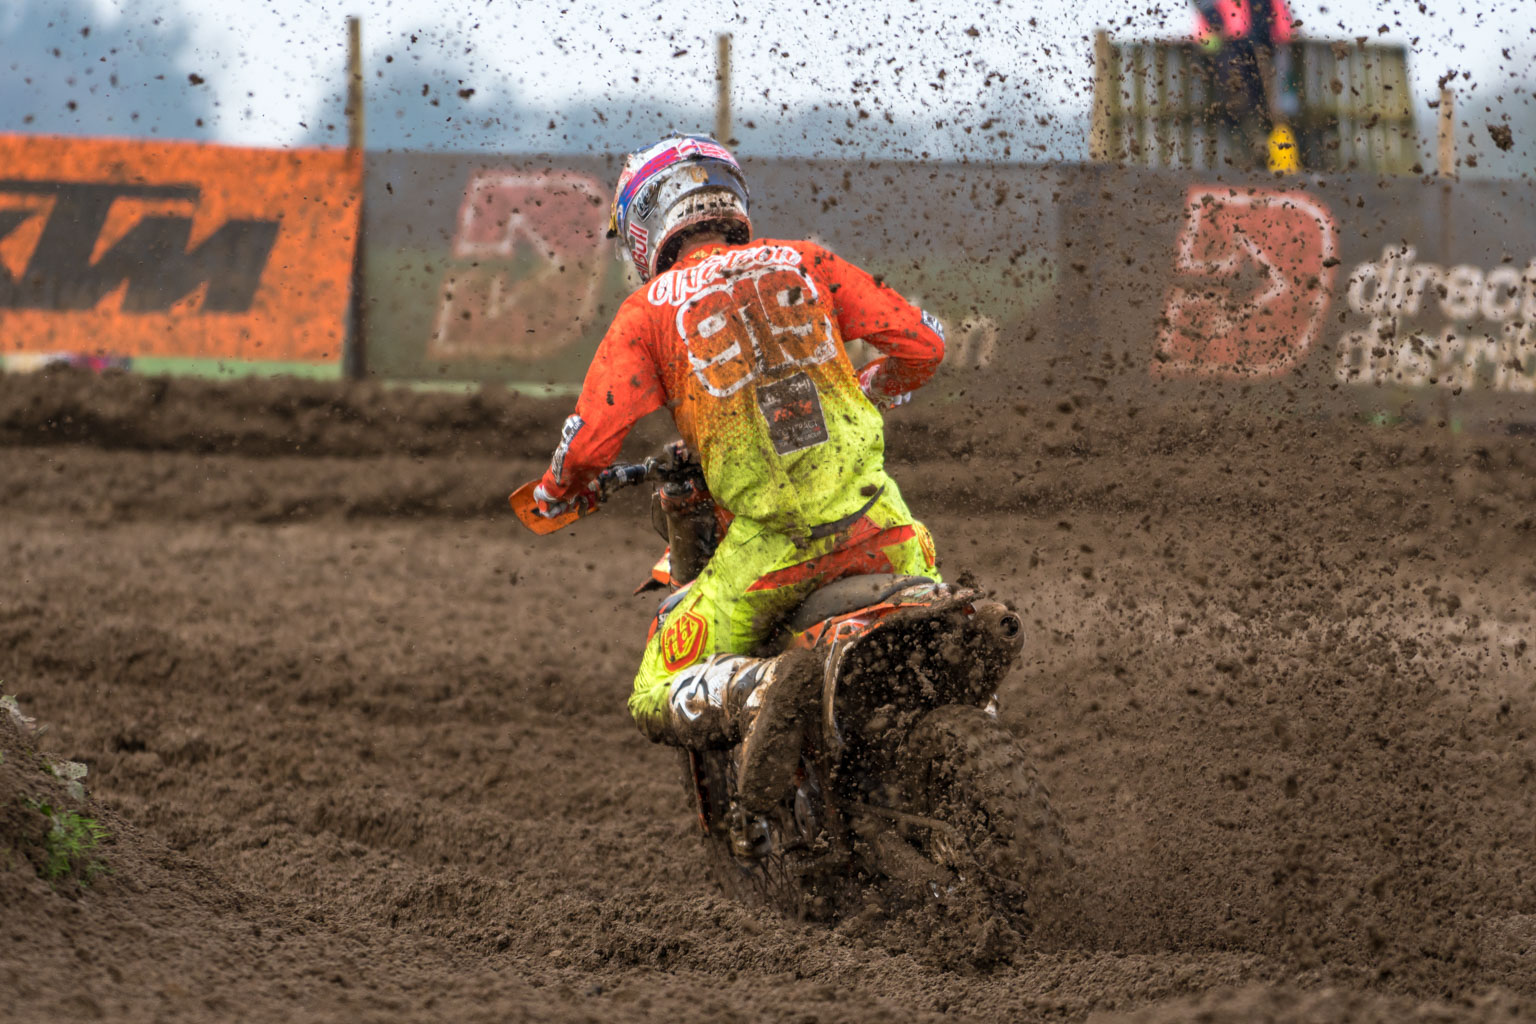 Ben Watson ploughs on to victory in MX2